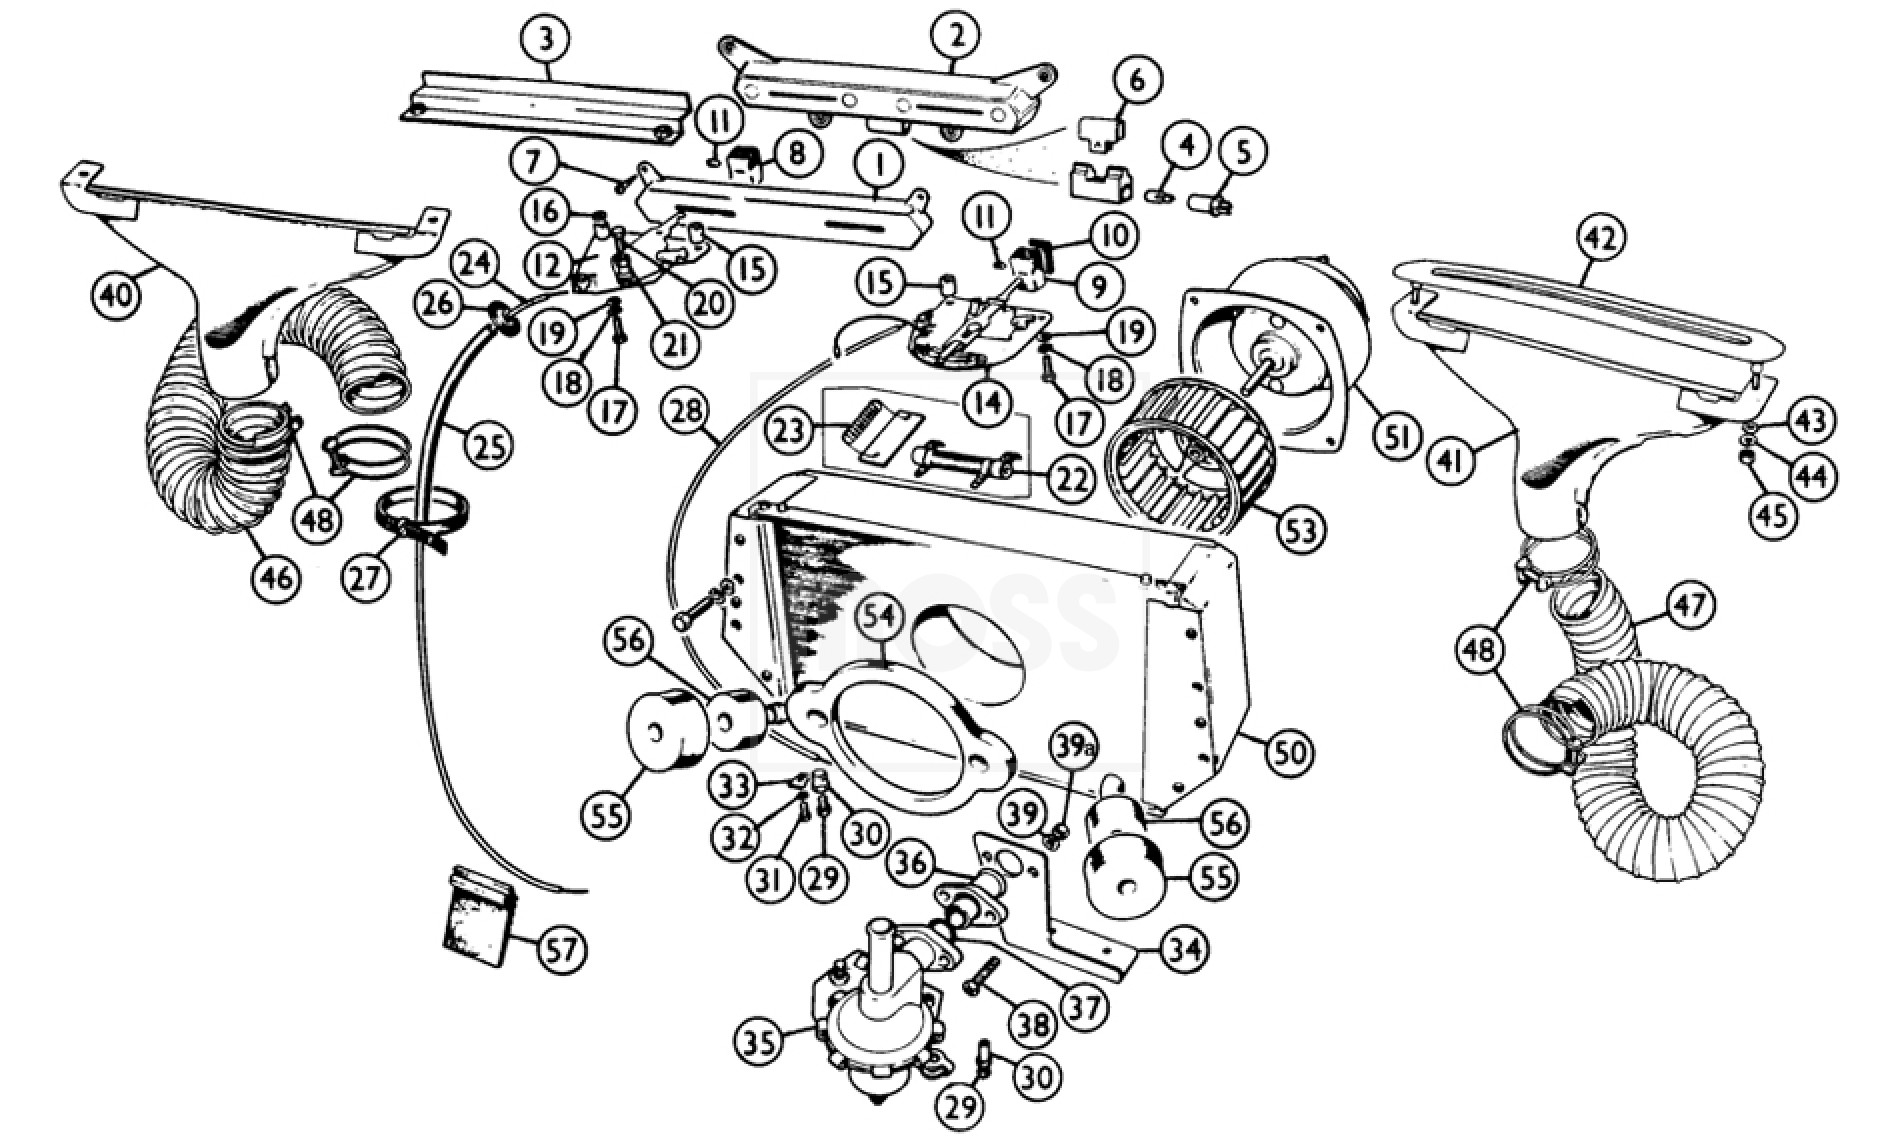 62 austin healey sprite wiring diagram